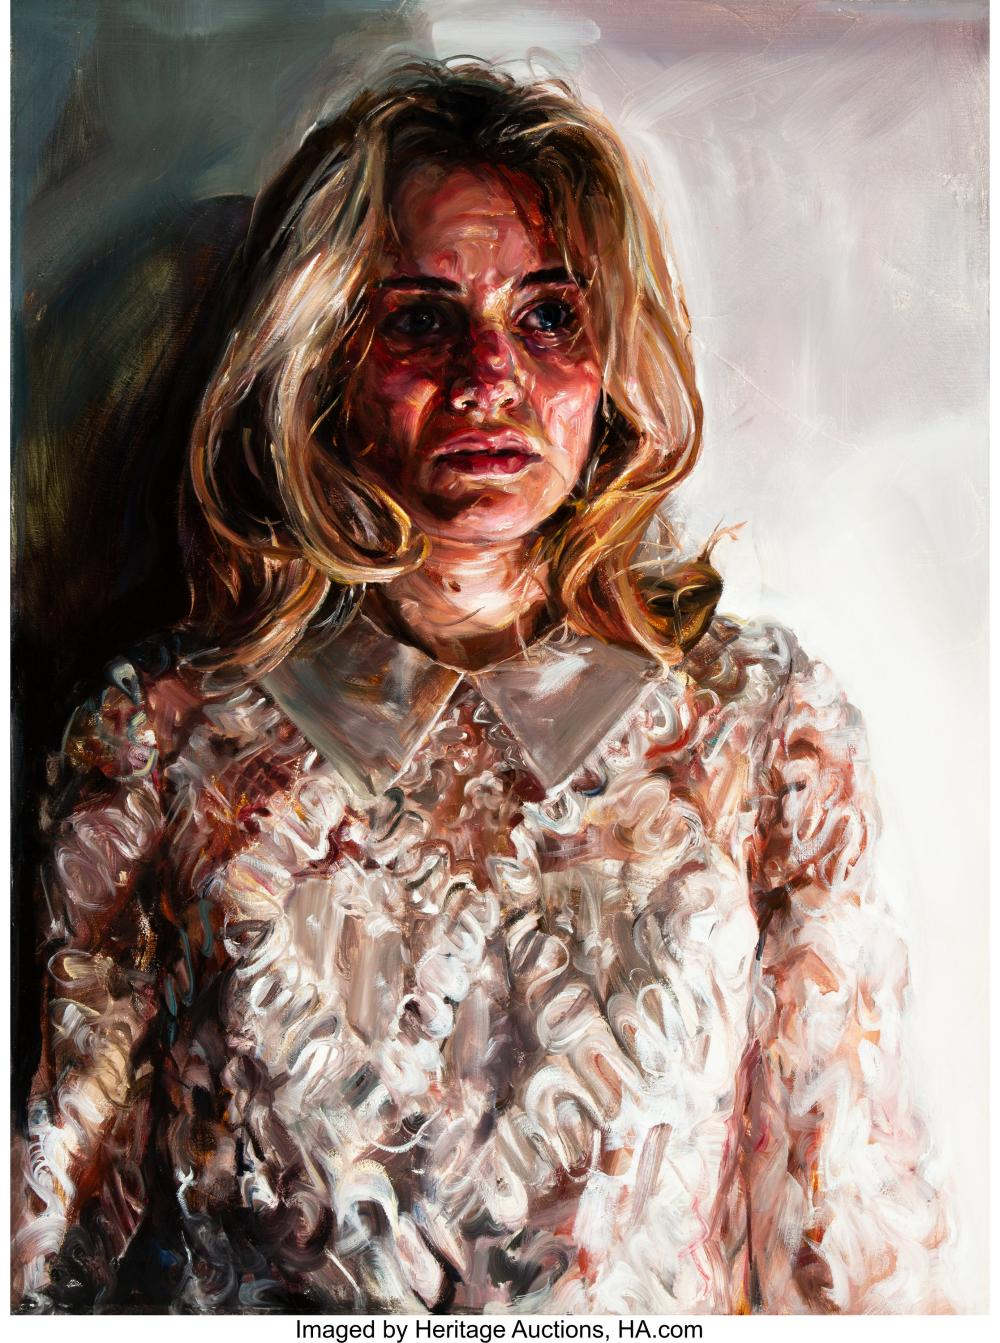 Lot 21218: Natalie Frank (American, 21st Century) Suzanne Oil on canvas 40 x 30 inches (101